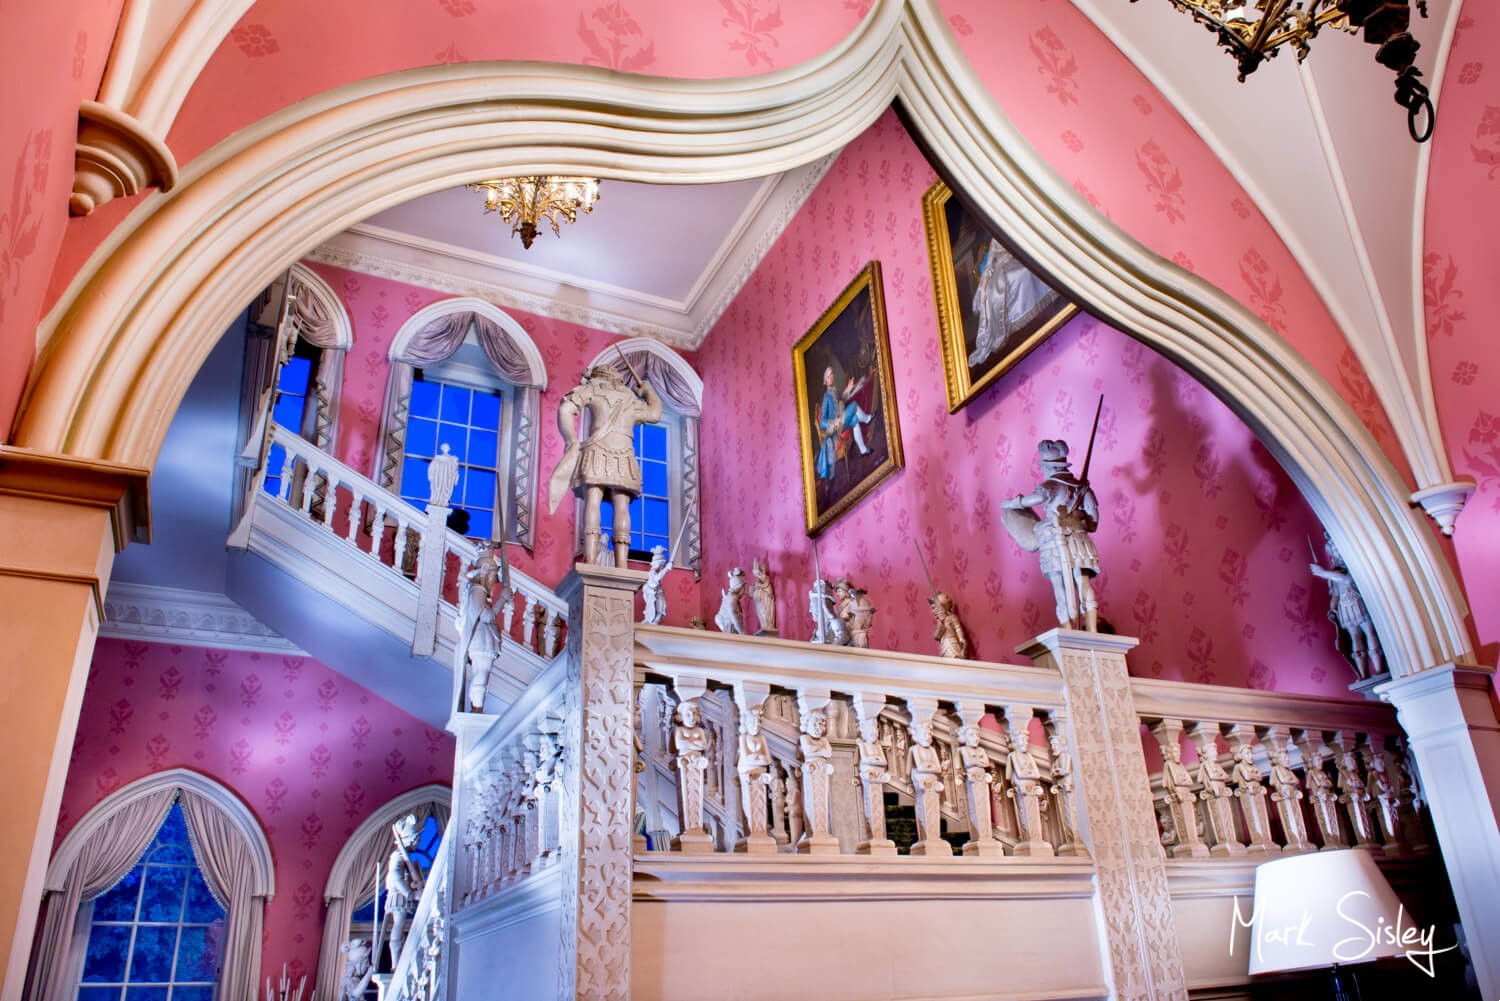 Buckinghamshire and London commercial photography of the most striking interiors at dusk - Hartwell House